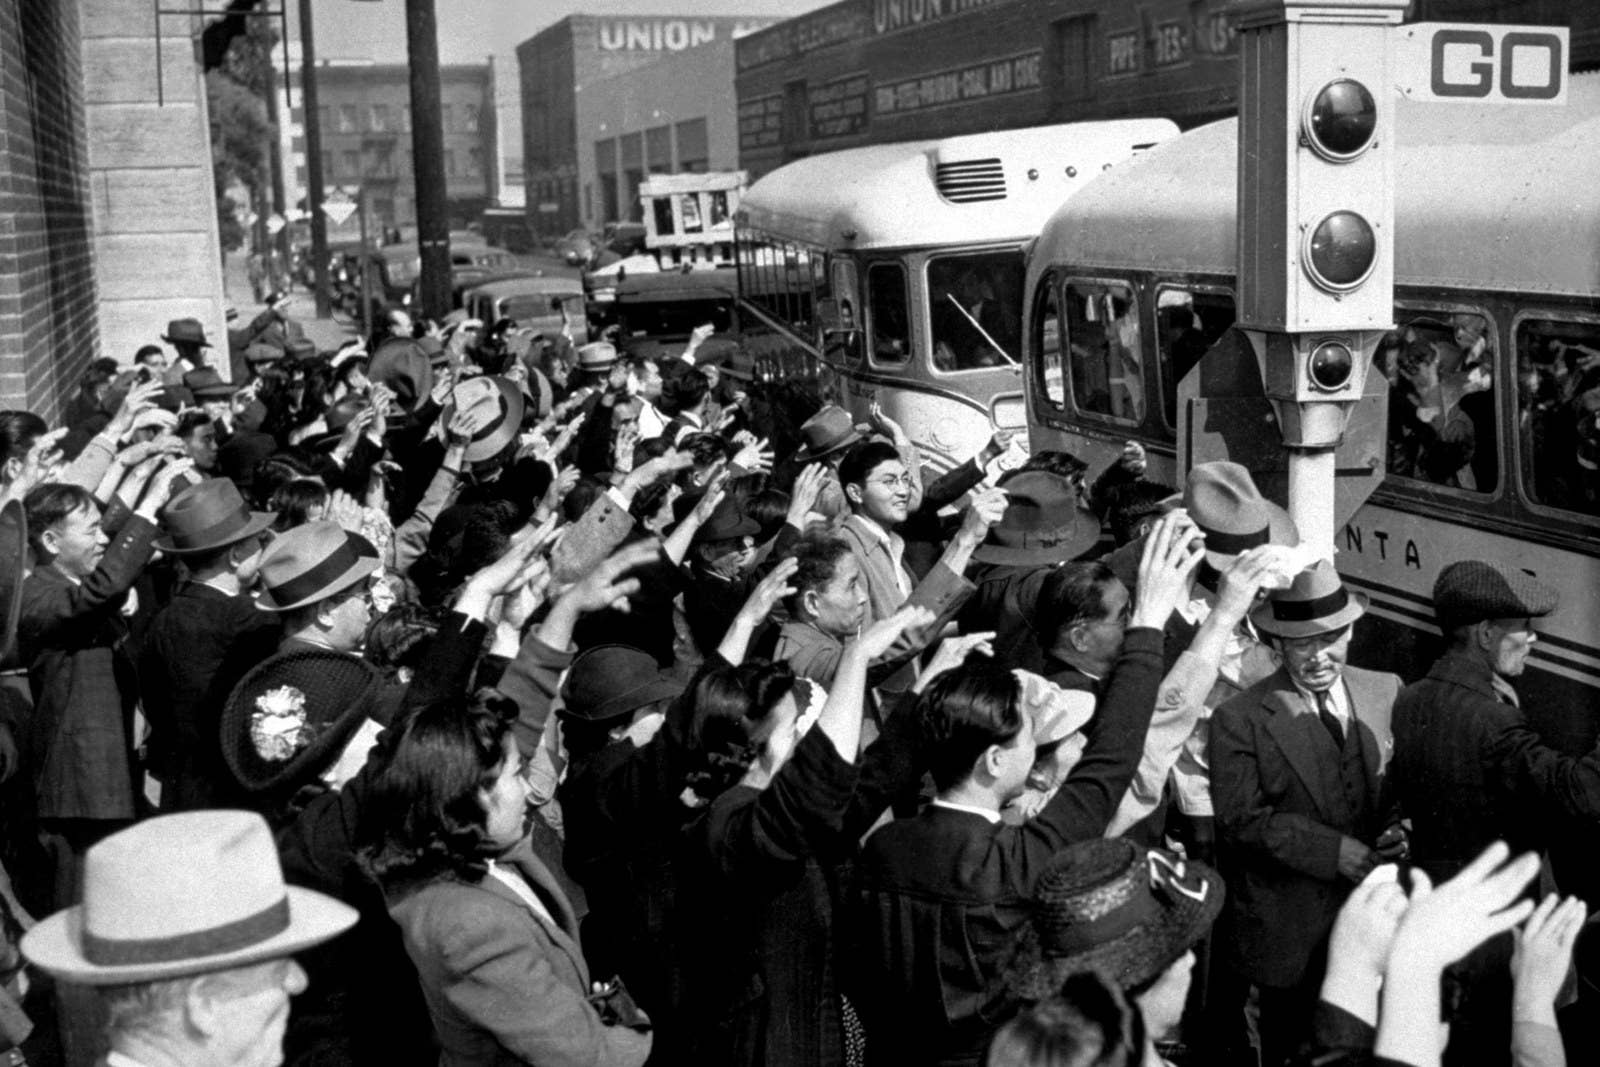 Hundreds of Japanese in Los Angeles board buses for San Francisco where they will sail back to Japan, circa 1941.